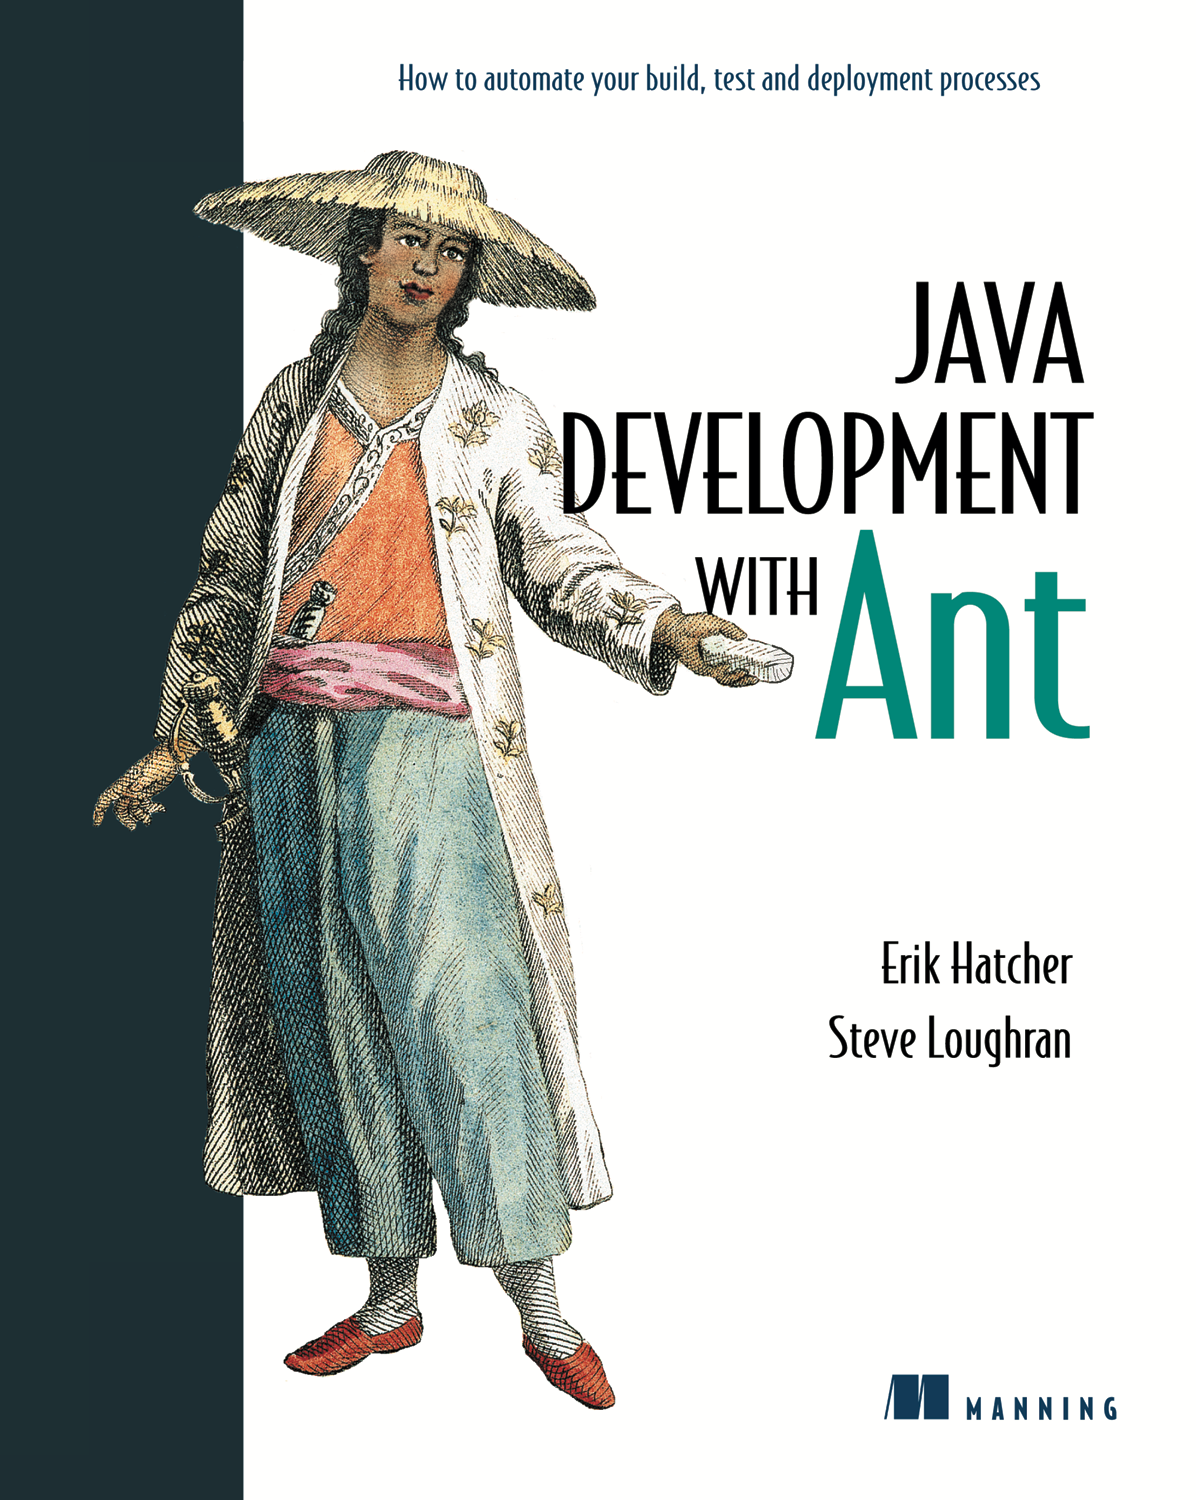 Java Development with Ant by Erik Hatcher and Steve Loughran